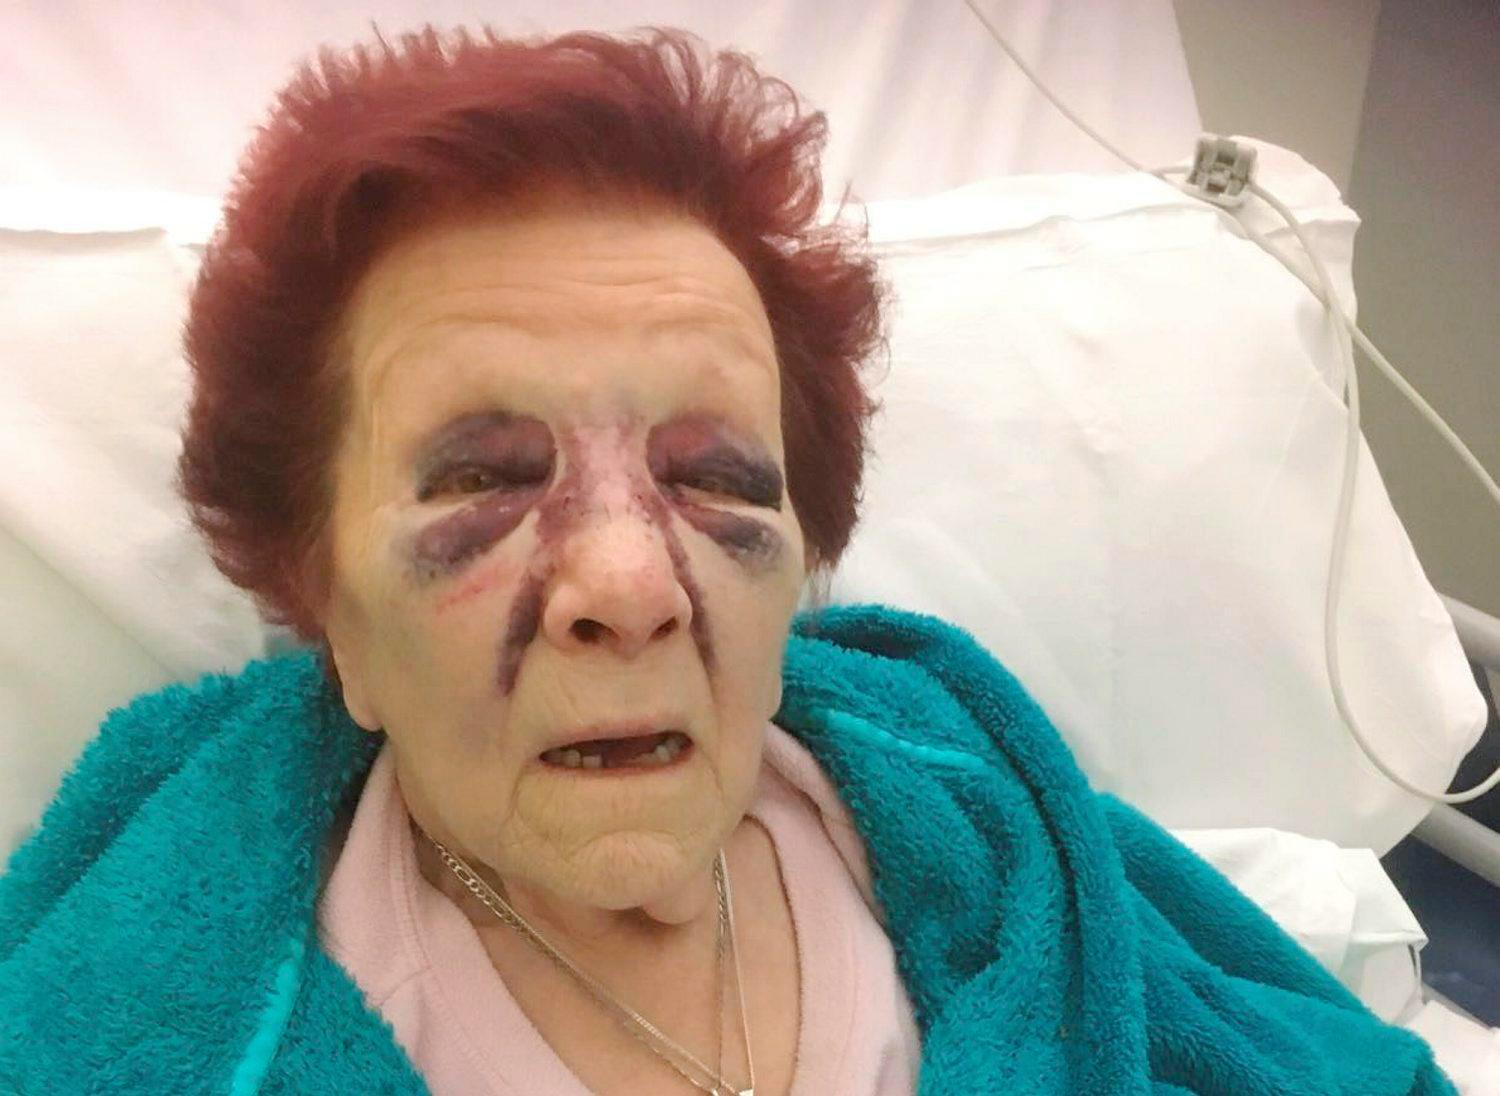 Gran was left with bleed on the brain after burglar dressed as policeman attacked her in own home